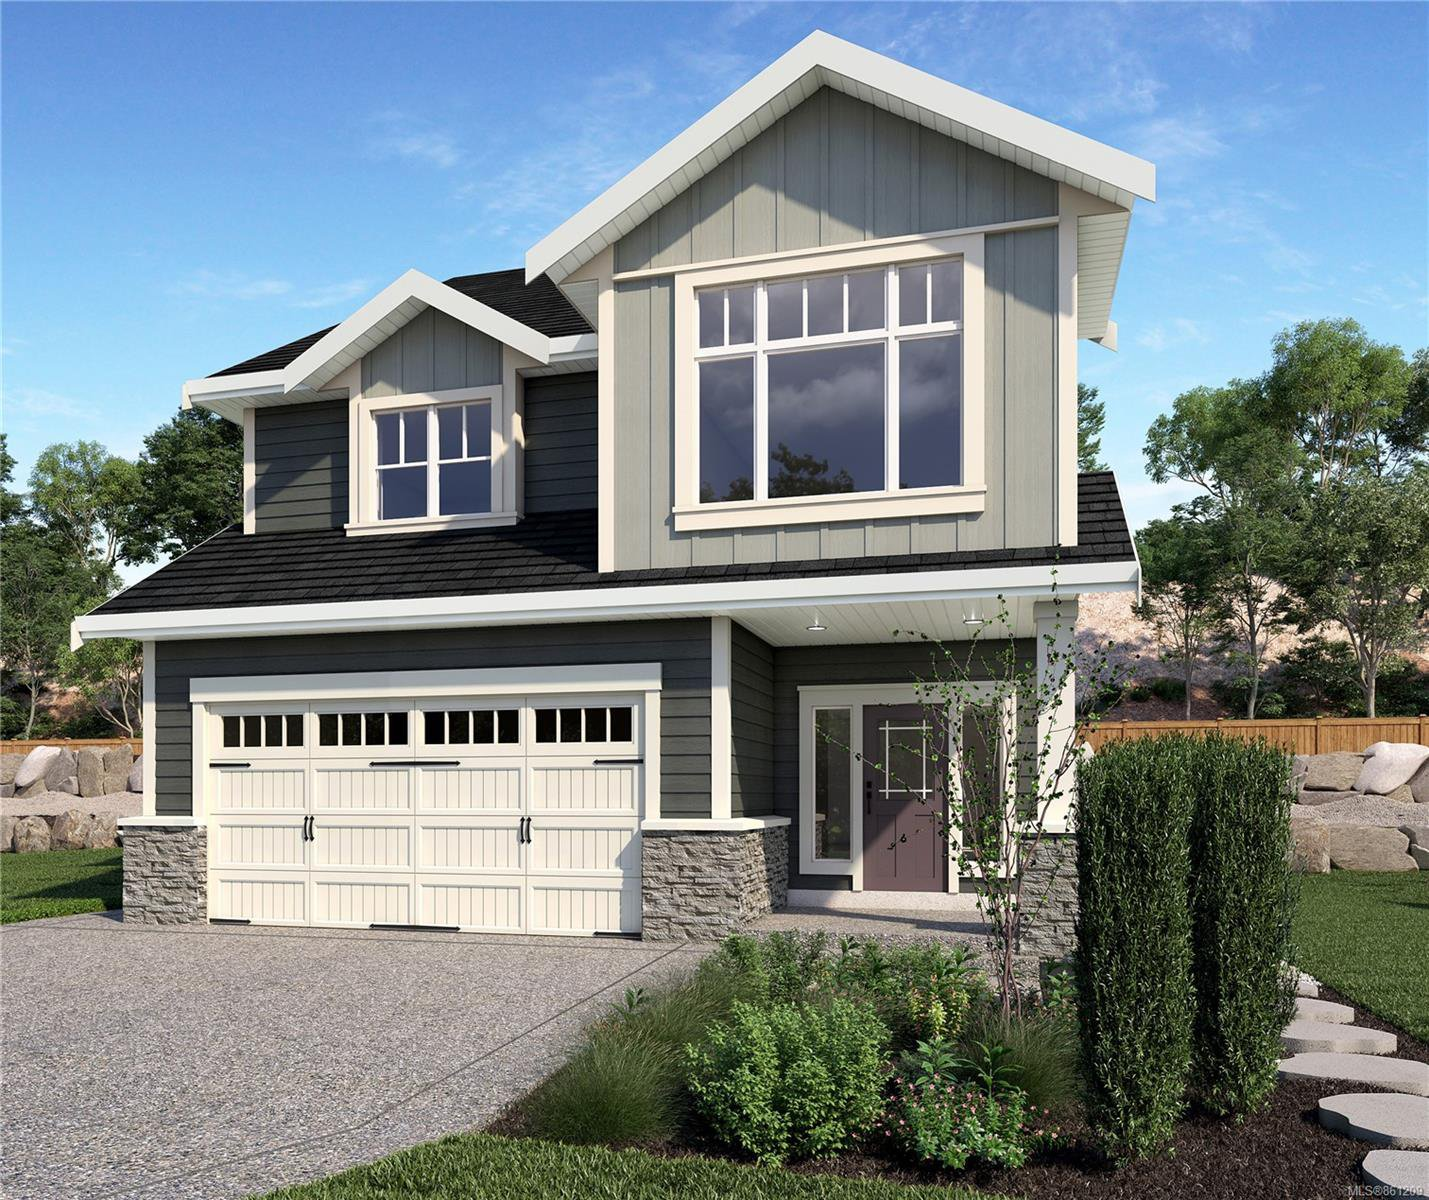 Rendering of similar home with similar plan. Not actual home, construction/colour will vary.